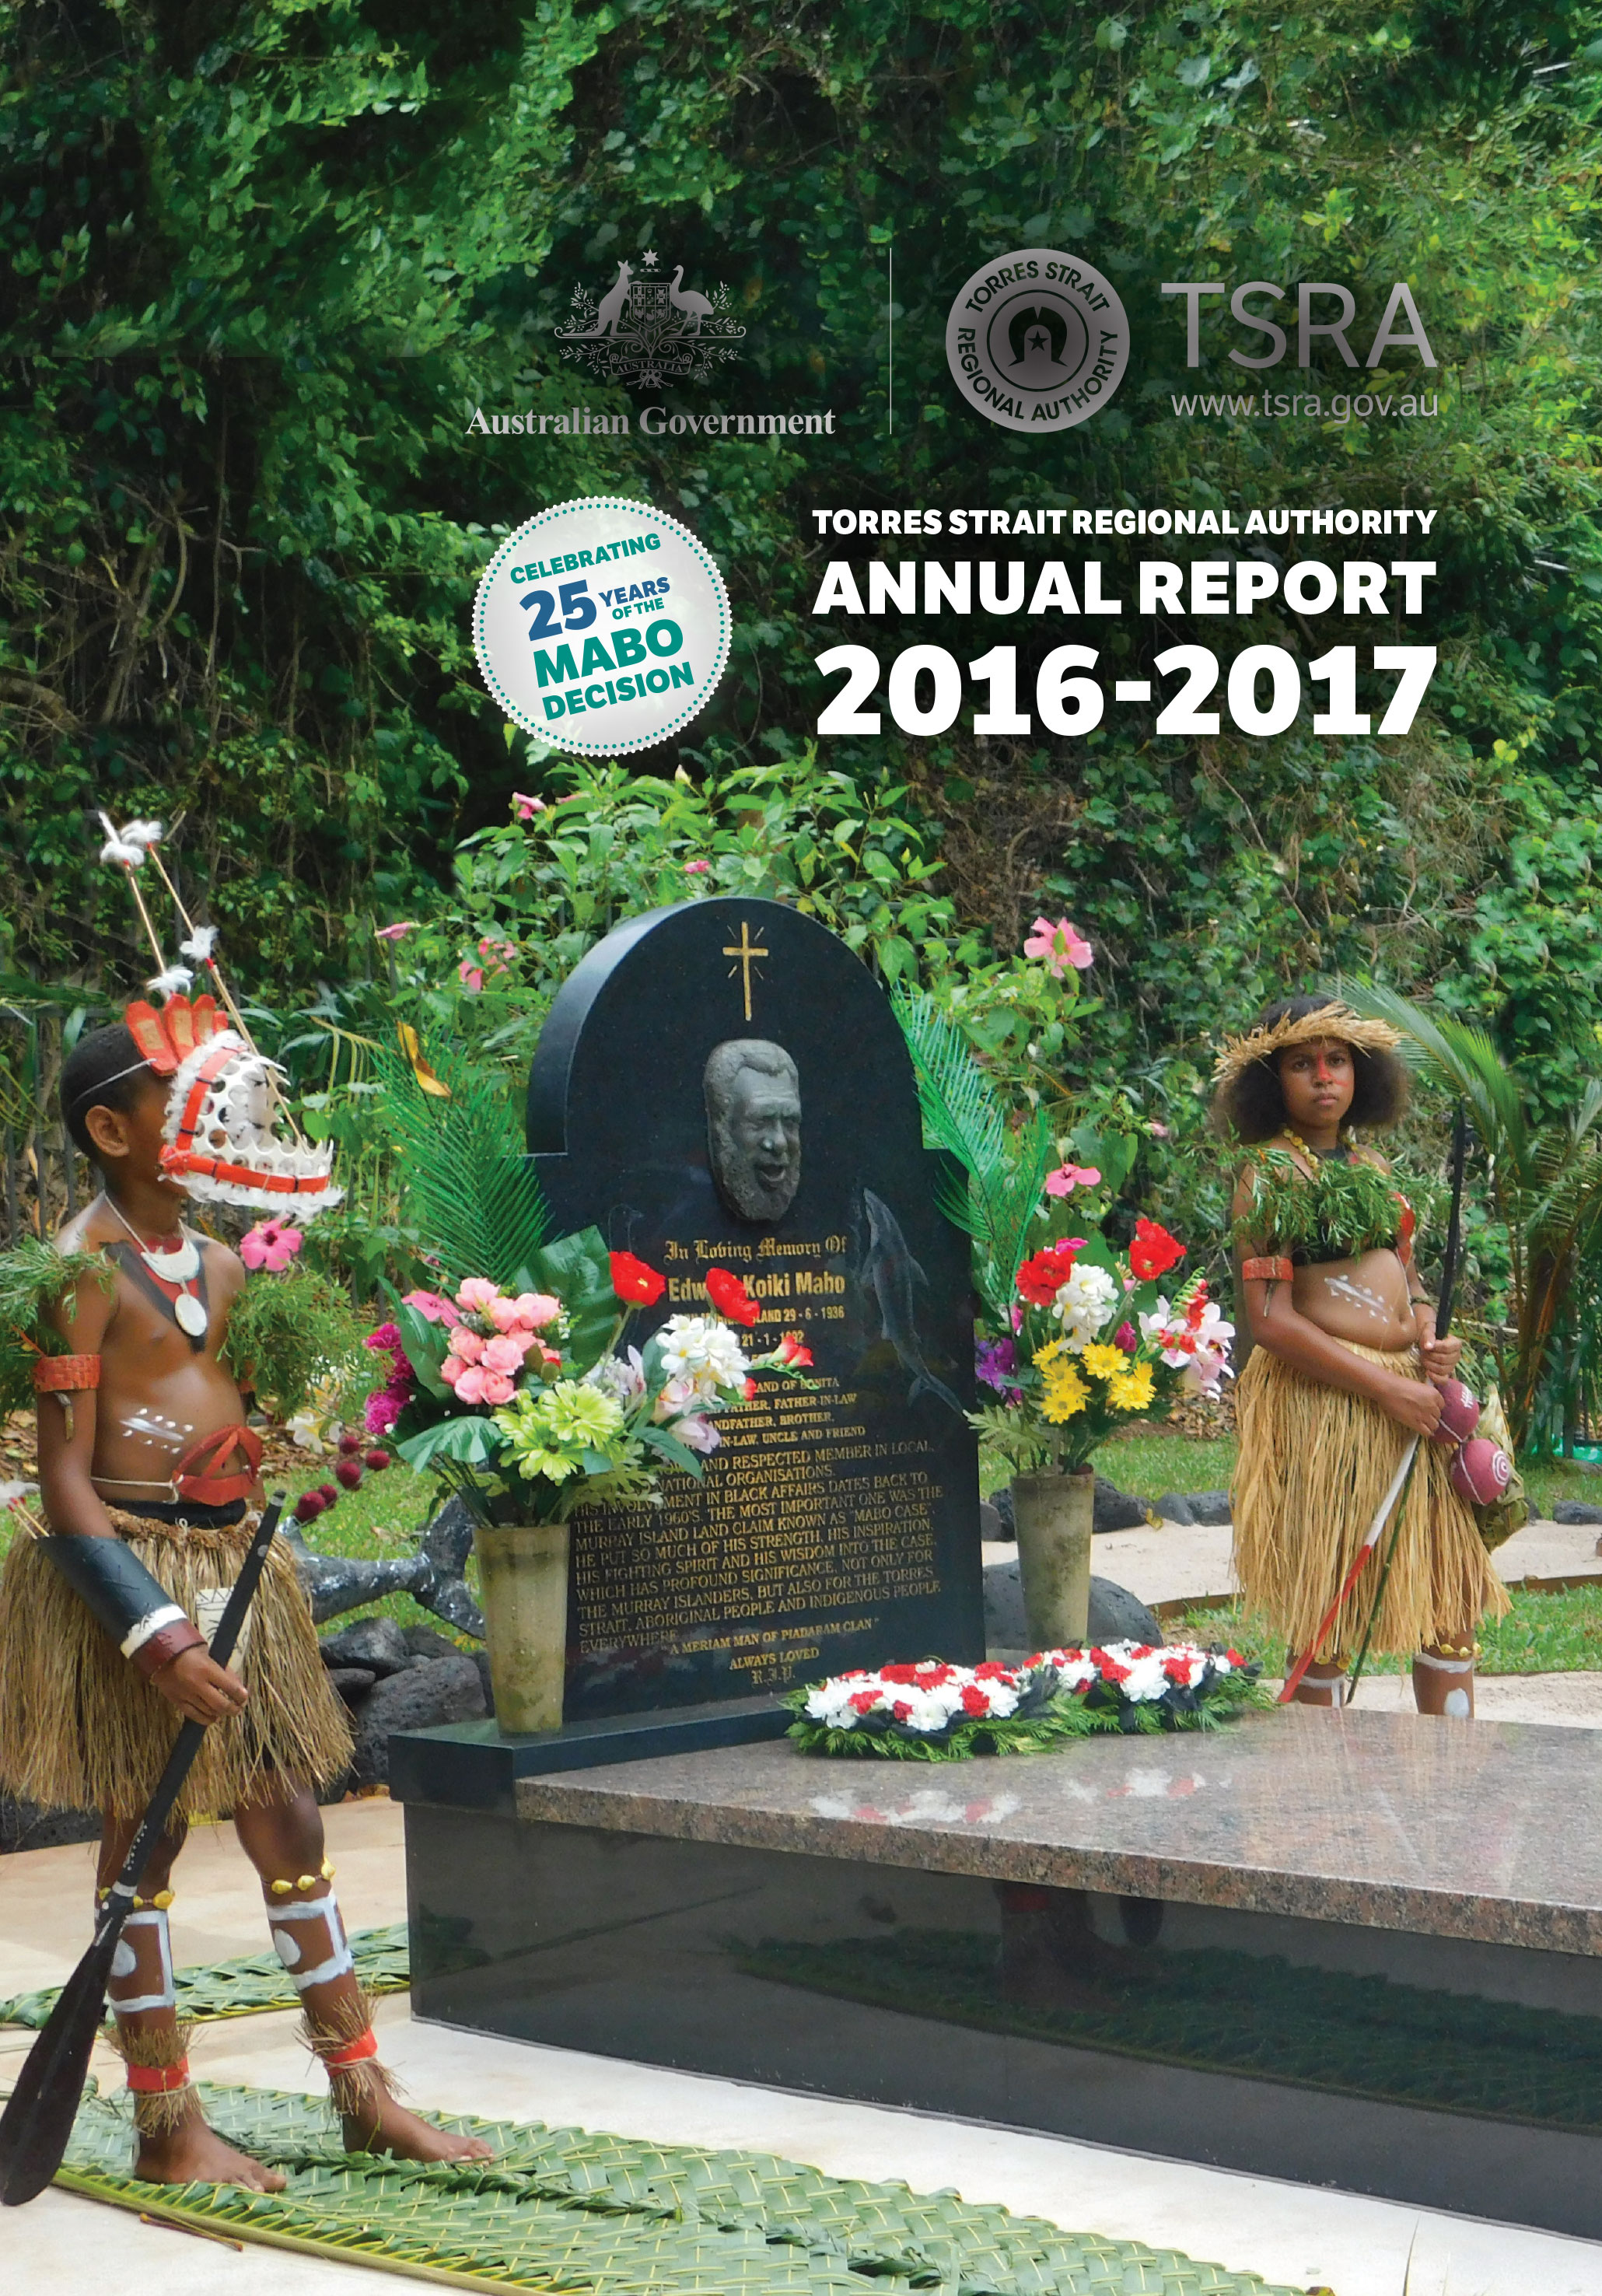 The cover photo features the gravesite of Torres Strait Native Title pioneer the late Mr Eddie Koiki Mabo. The gravesite was photographed by the TSRA's Native Title Office during the 25th Anniversary Celebration of the historic High Court Mabo decision. The landmark Mabo decision was a significant achievement for Indigenous land rights and opened the door for Native Title recognition and determinations not only in the Torres Strait but across Australia.